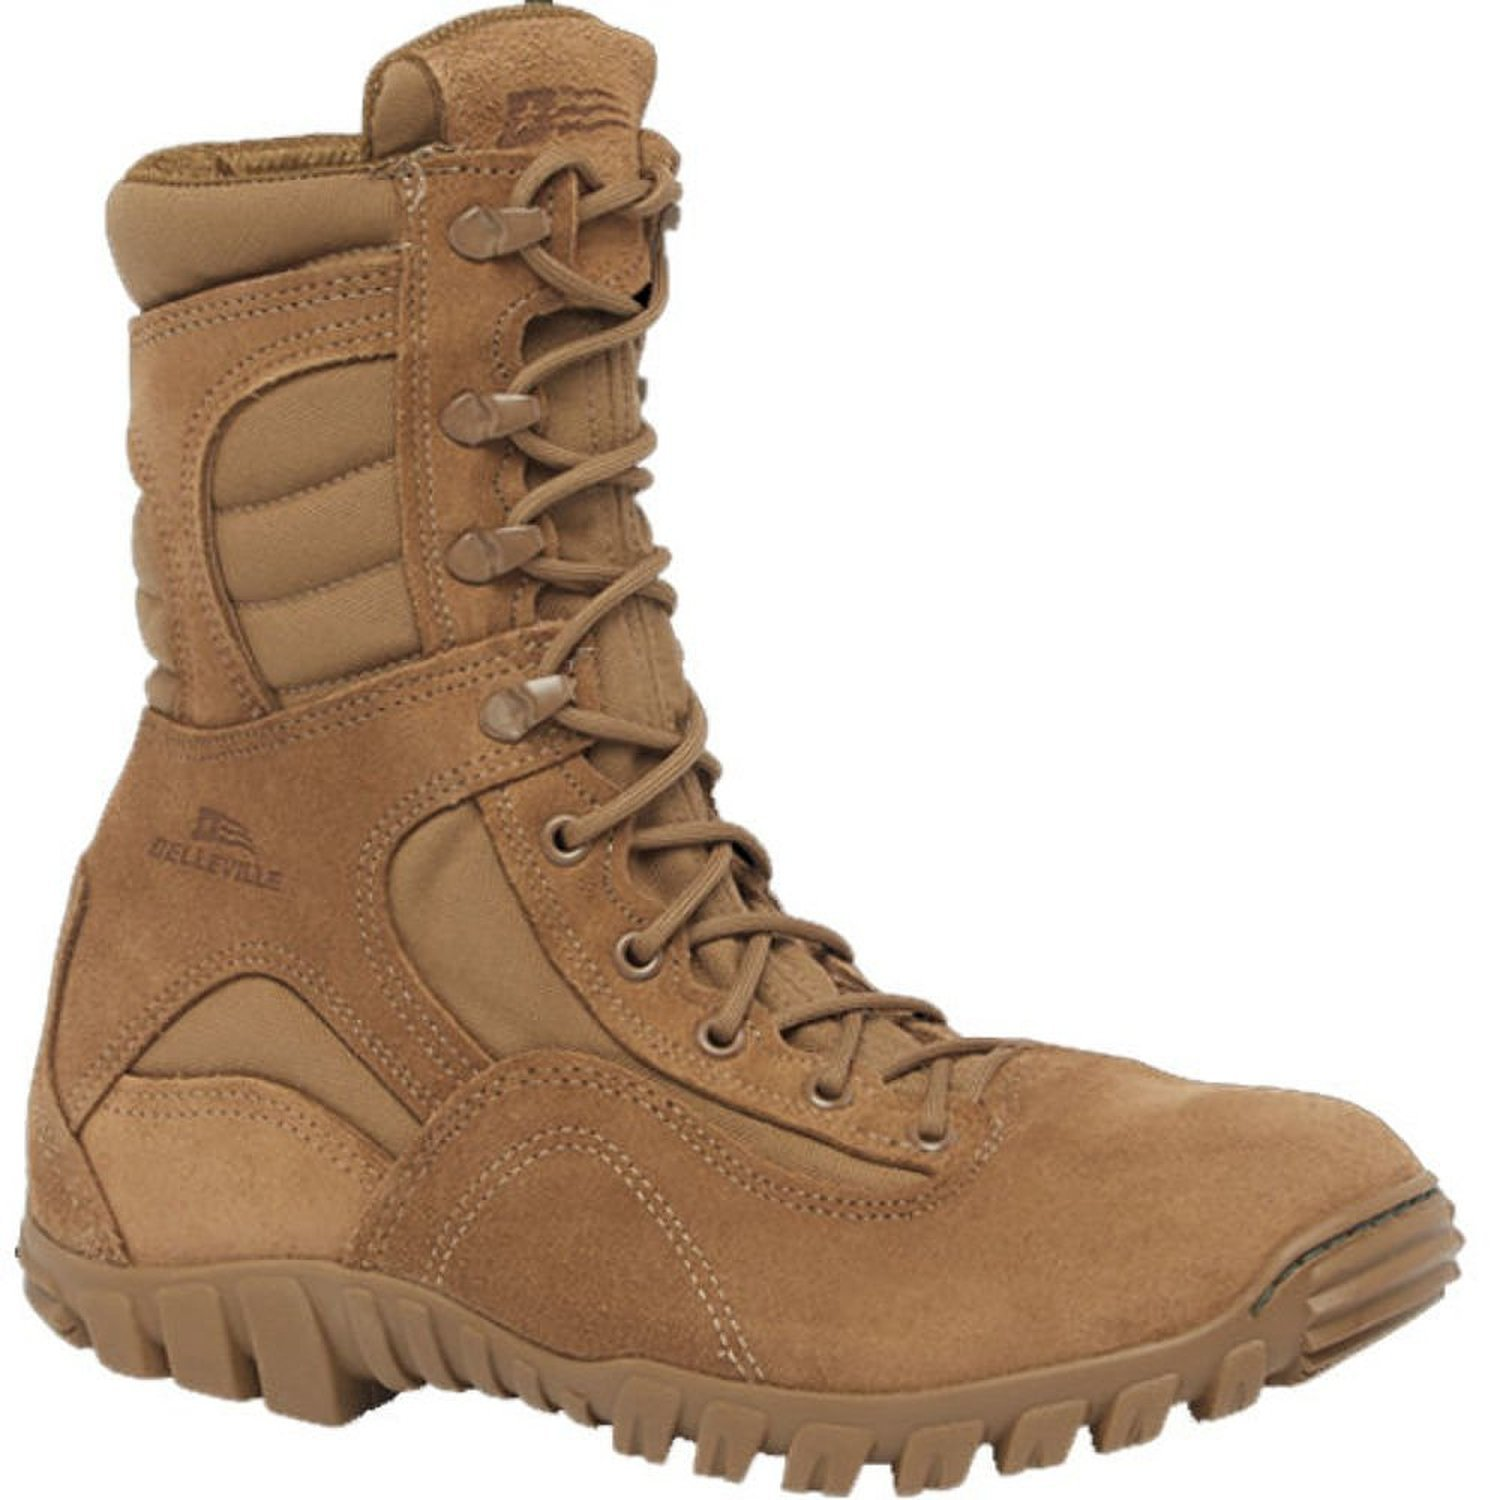 Belleville 533ST Men's Hot Weather Hybrid Steel Toe Assault Boot